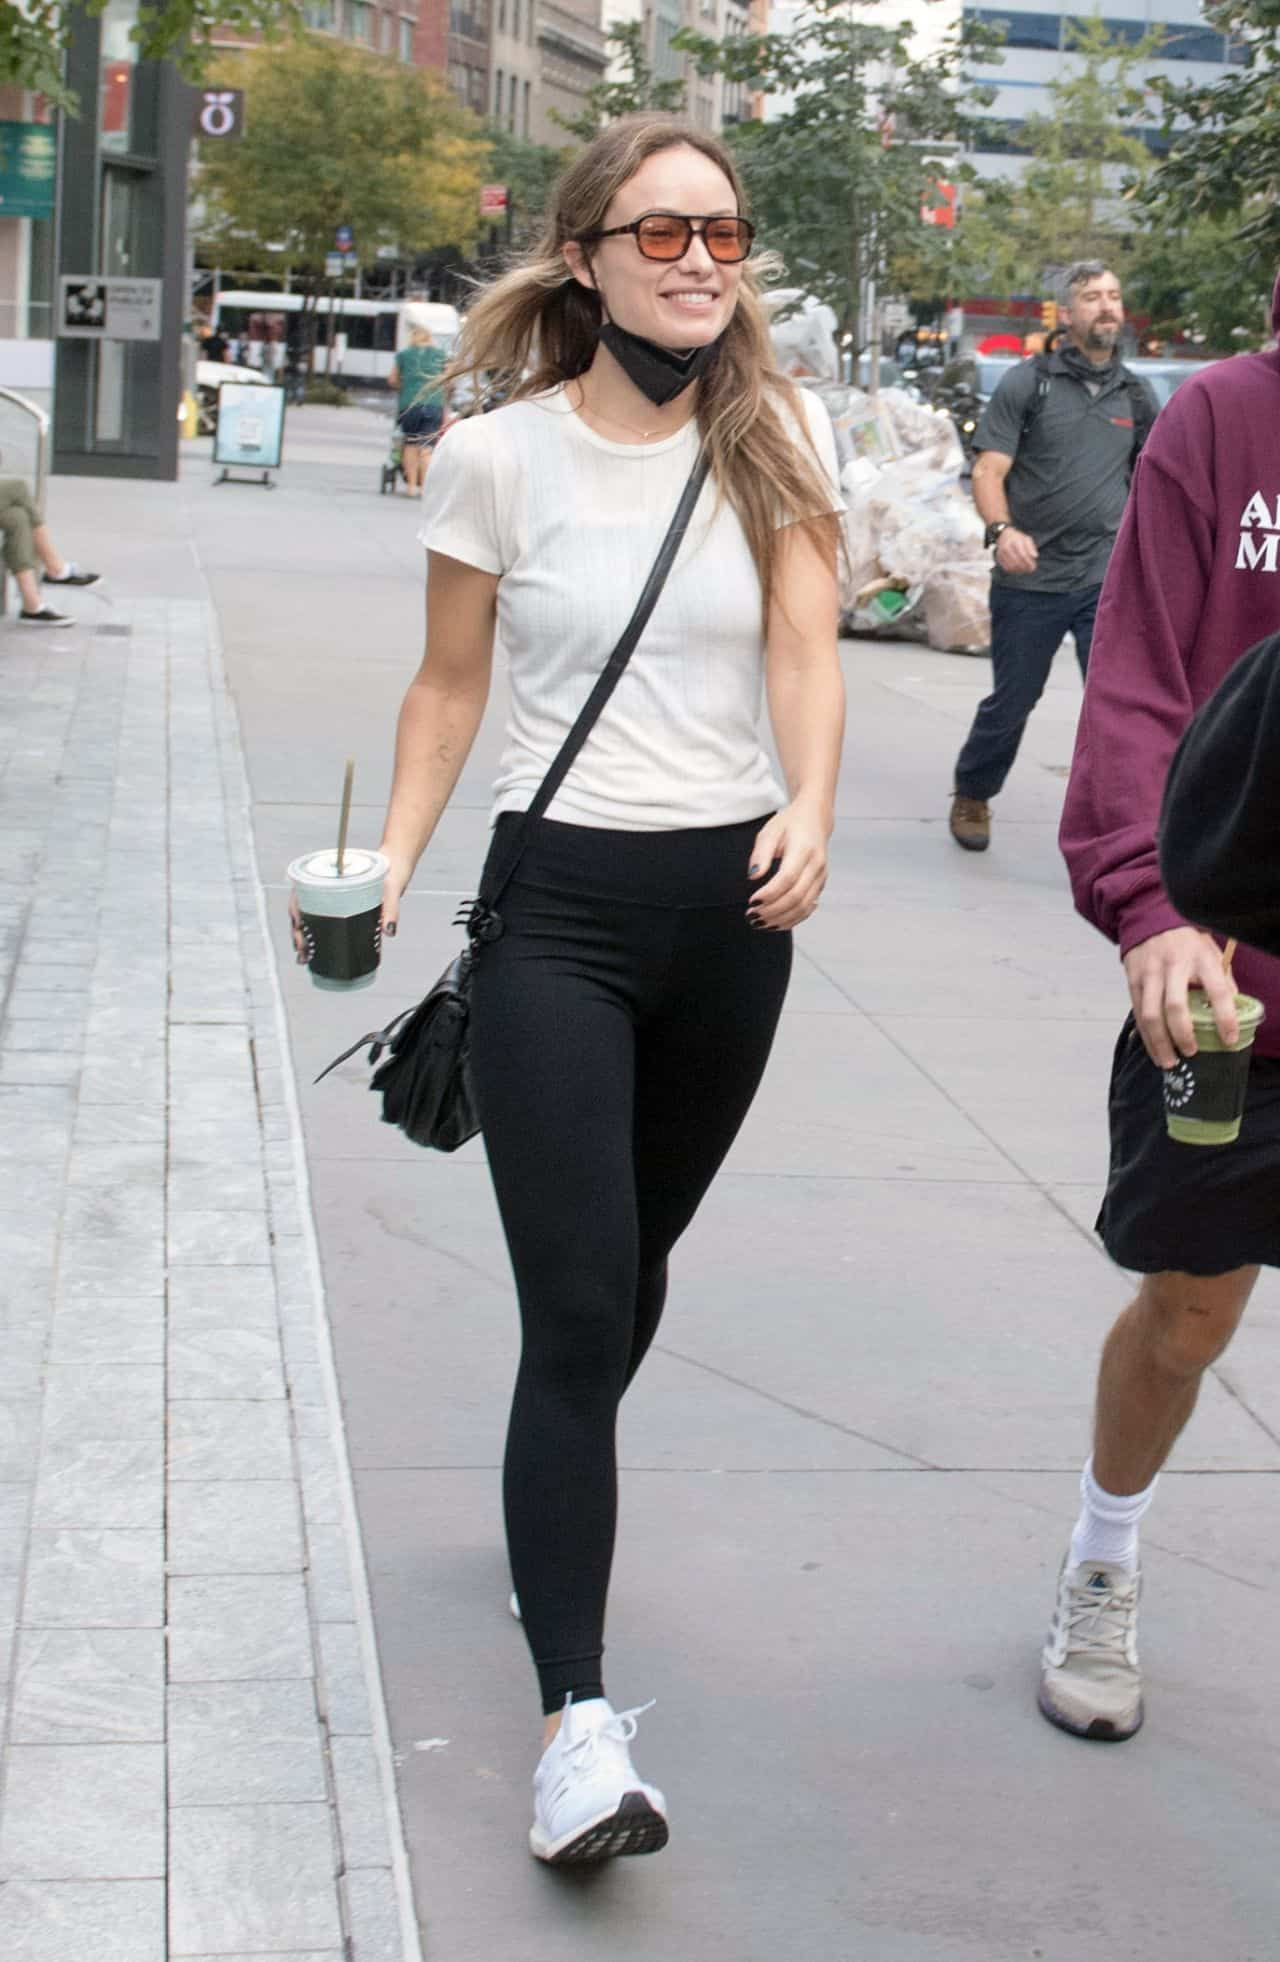 Olivia Wilde Smiles Happily as she Walks with Harry Styles in NYC